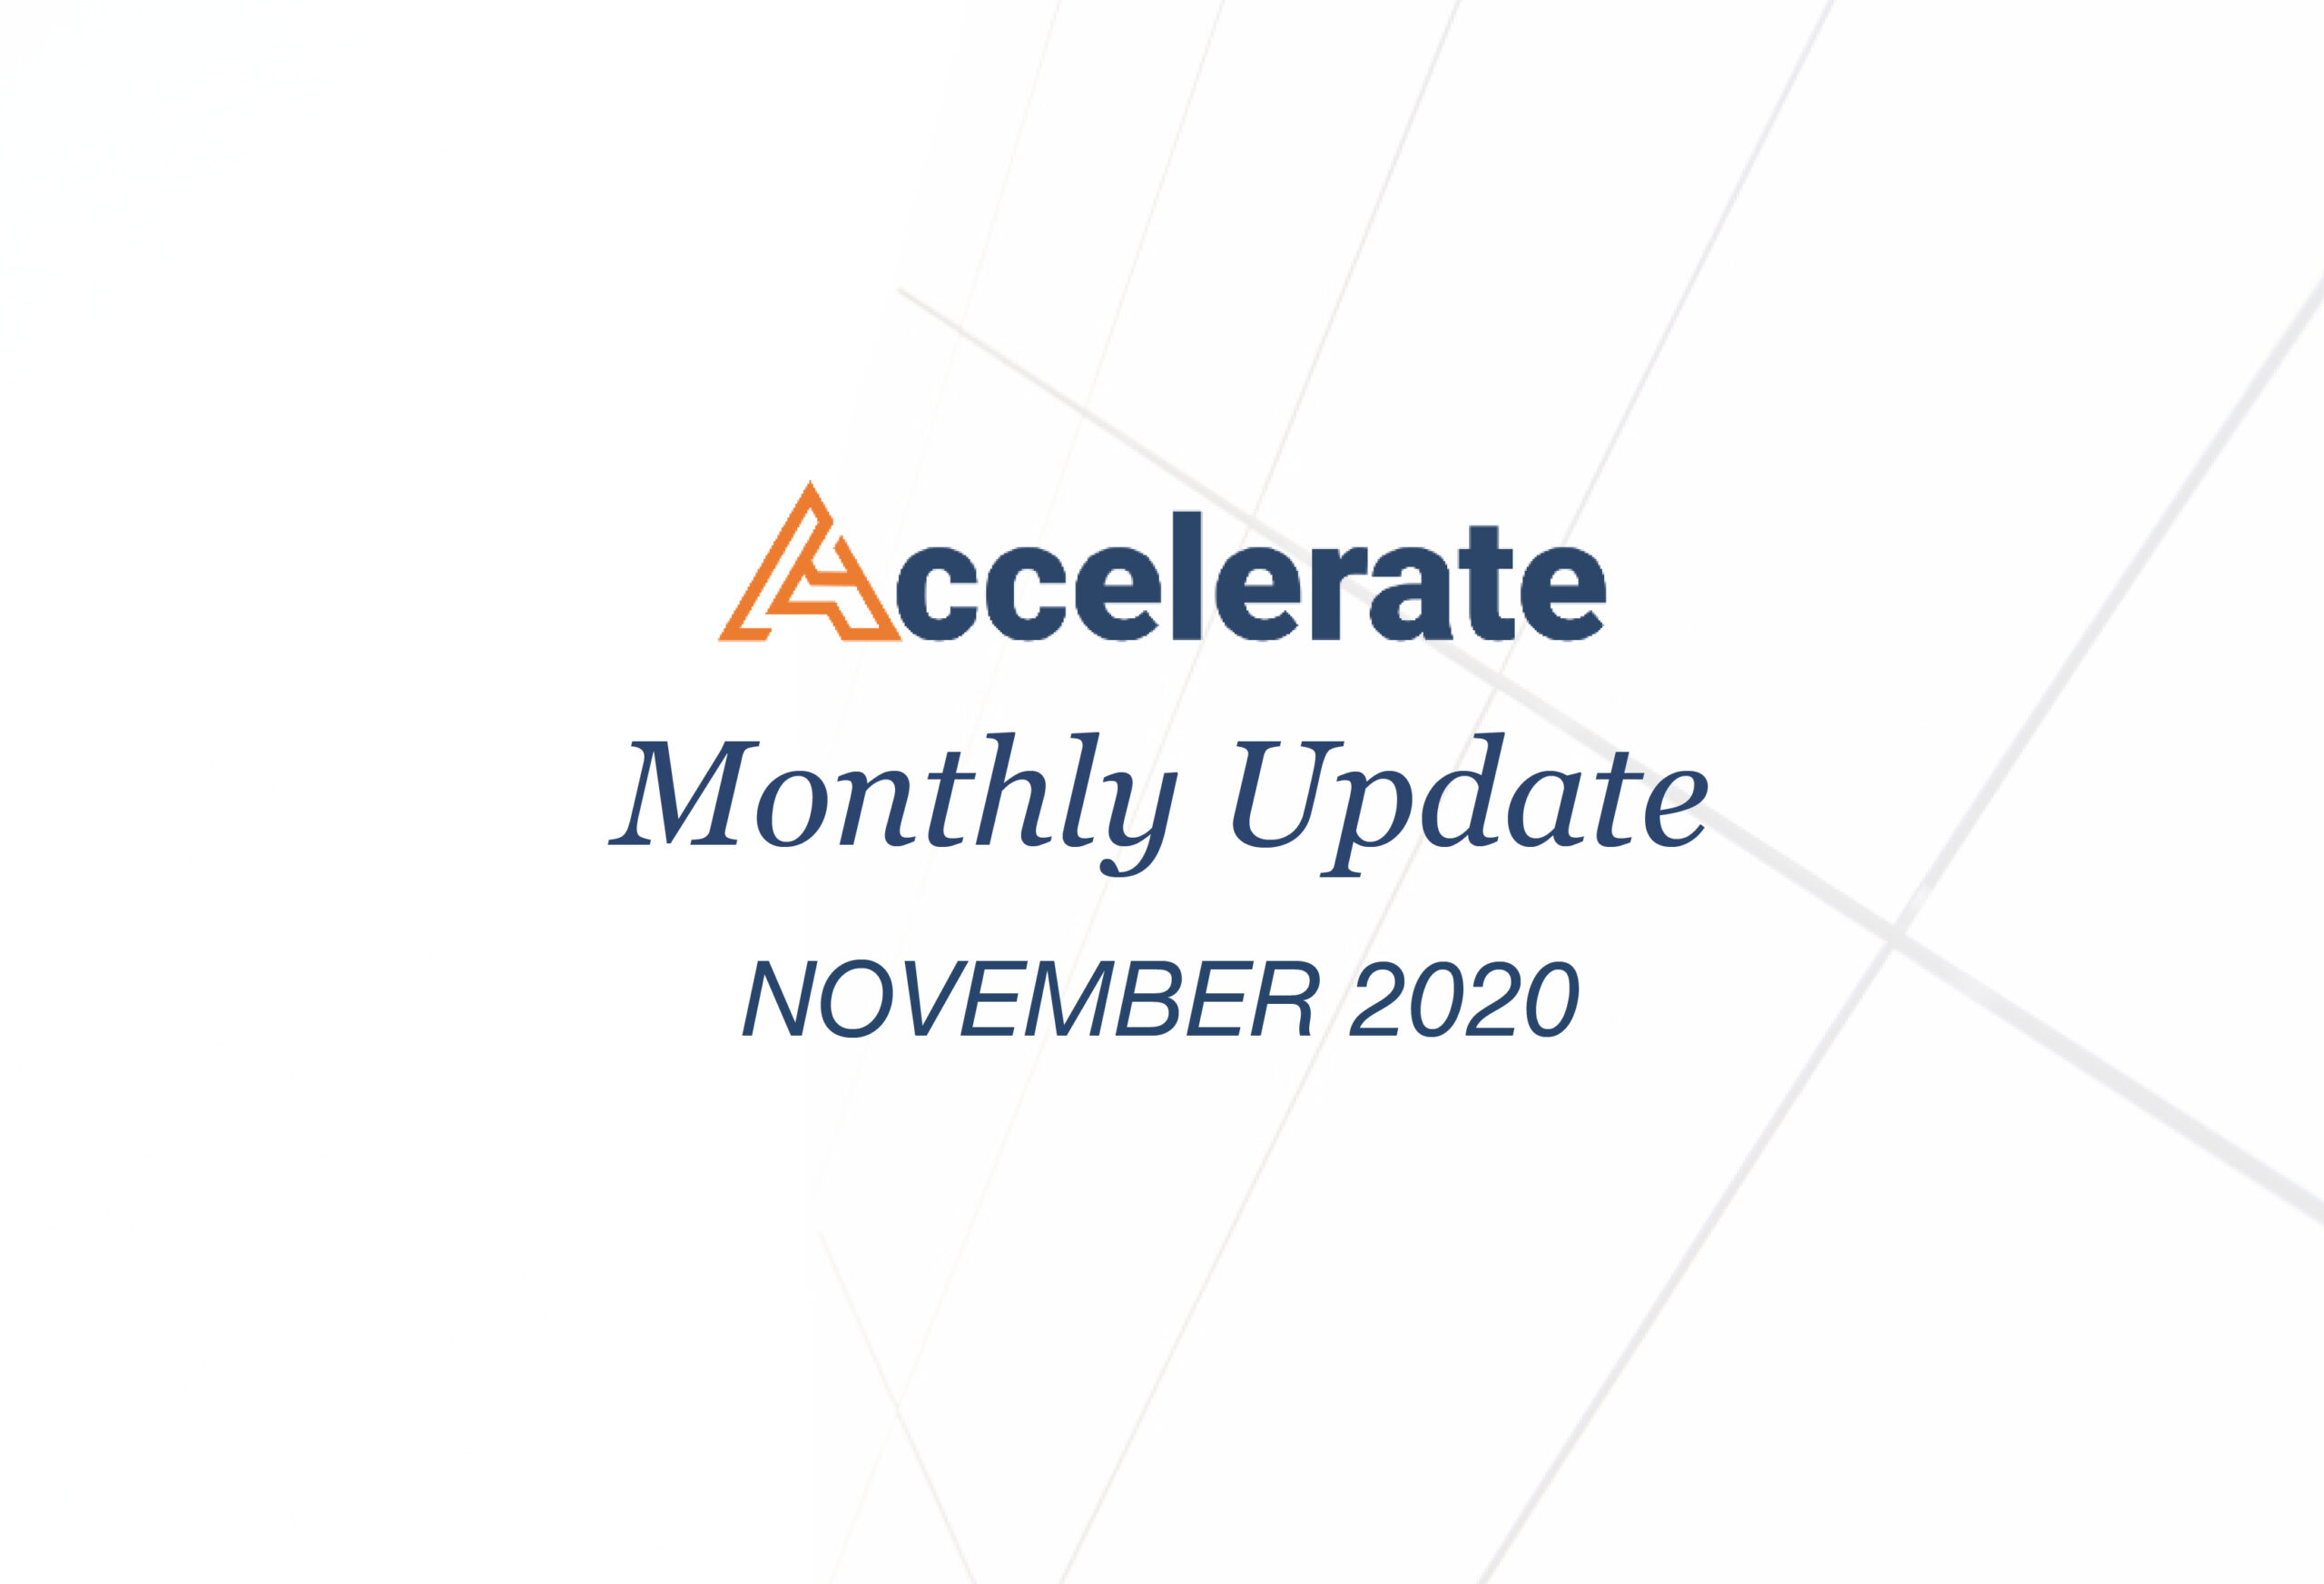 Accelerate Monthly Update – November 2020